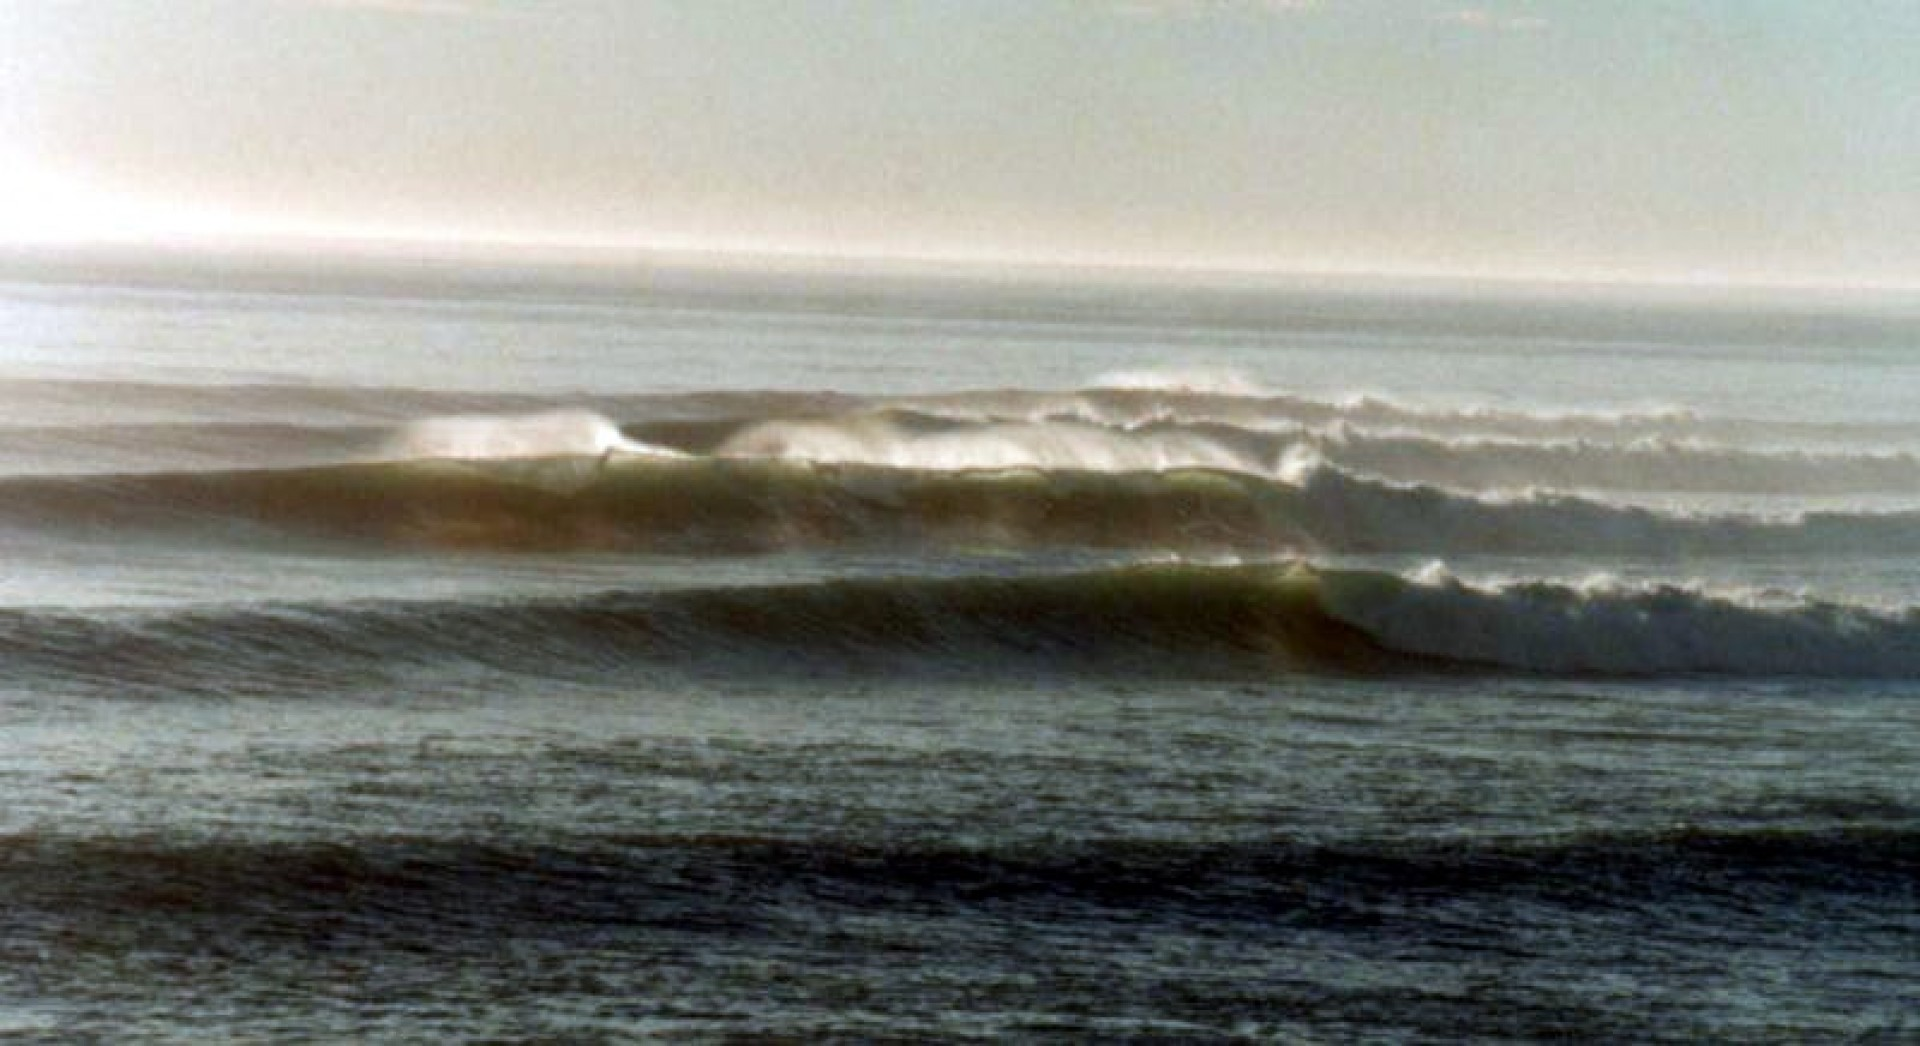 pointsurf's photo of Taghazout